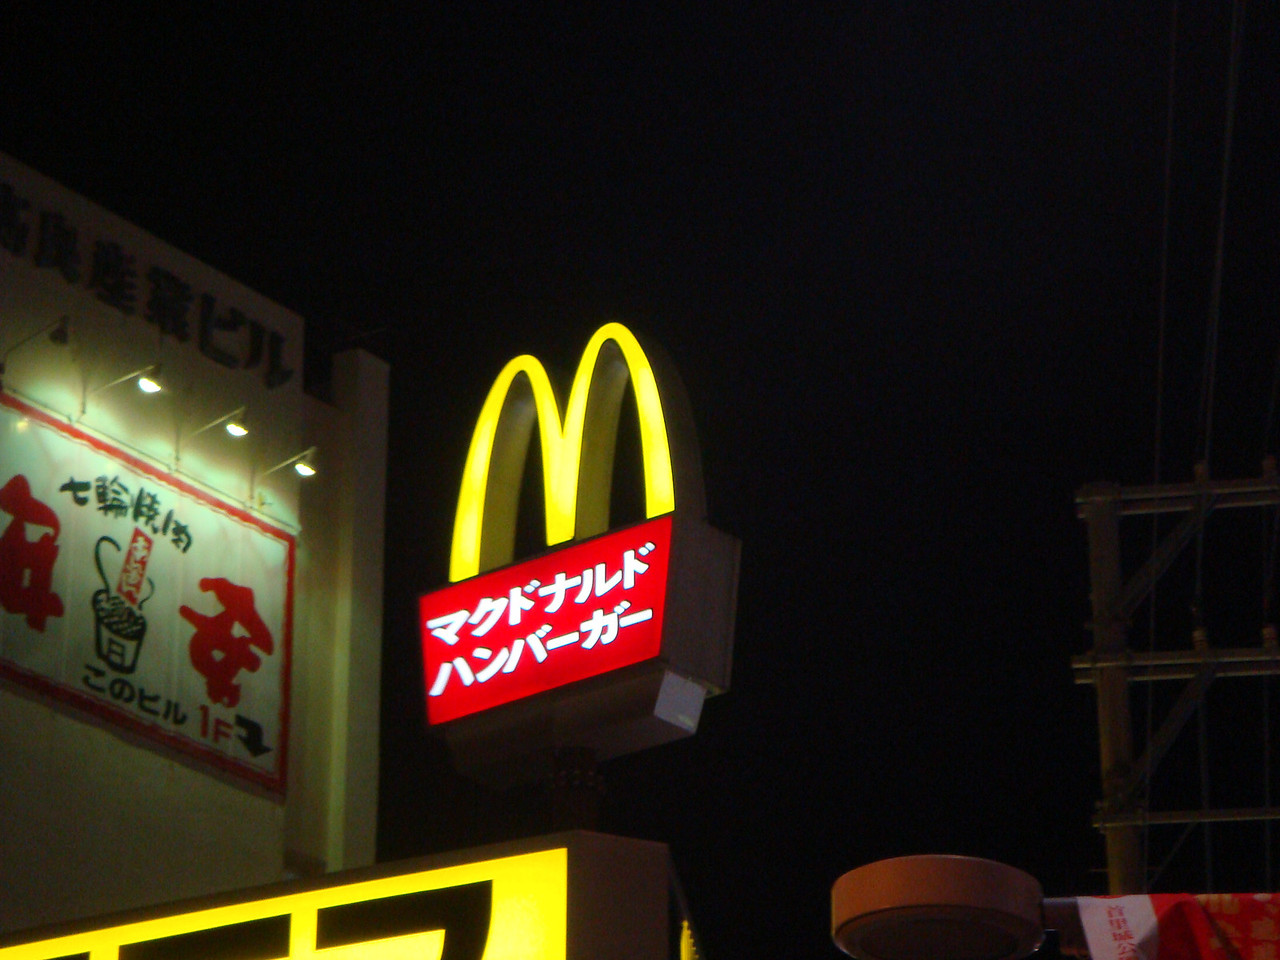 Neon McDonald's Sign in Okinawa, Japan